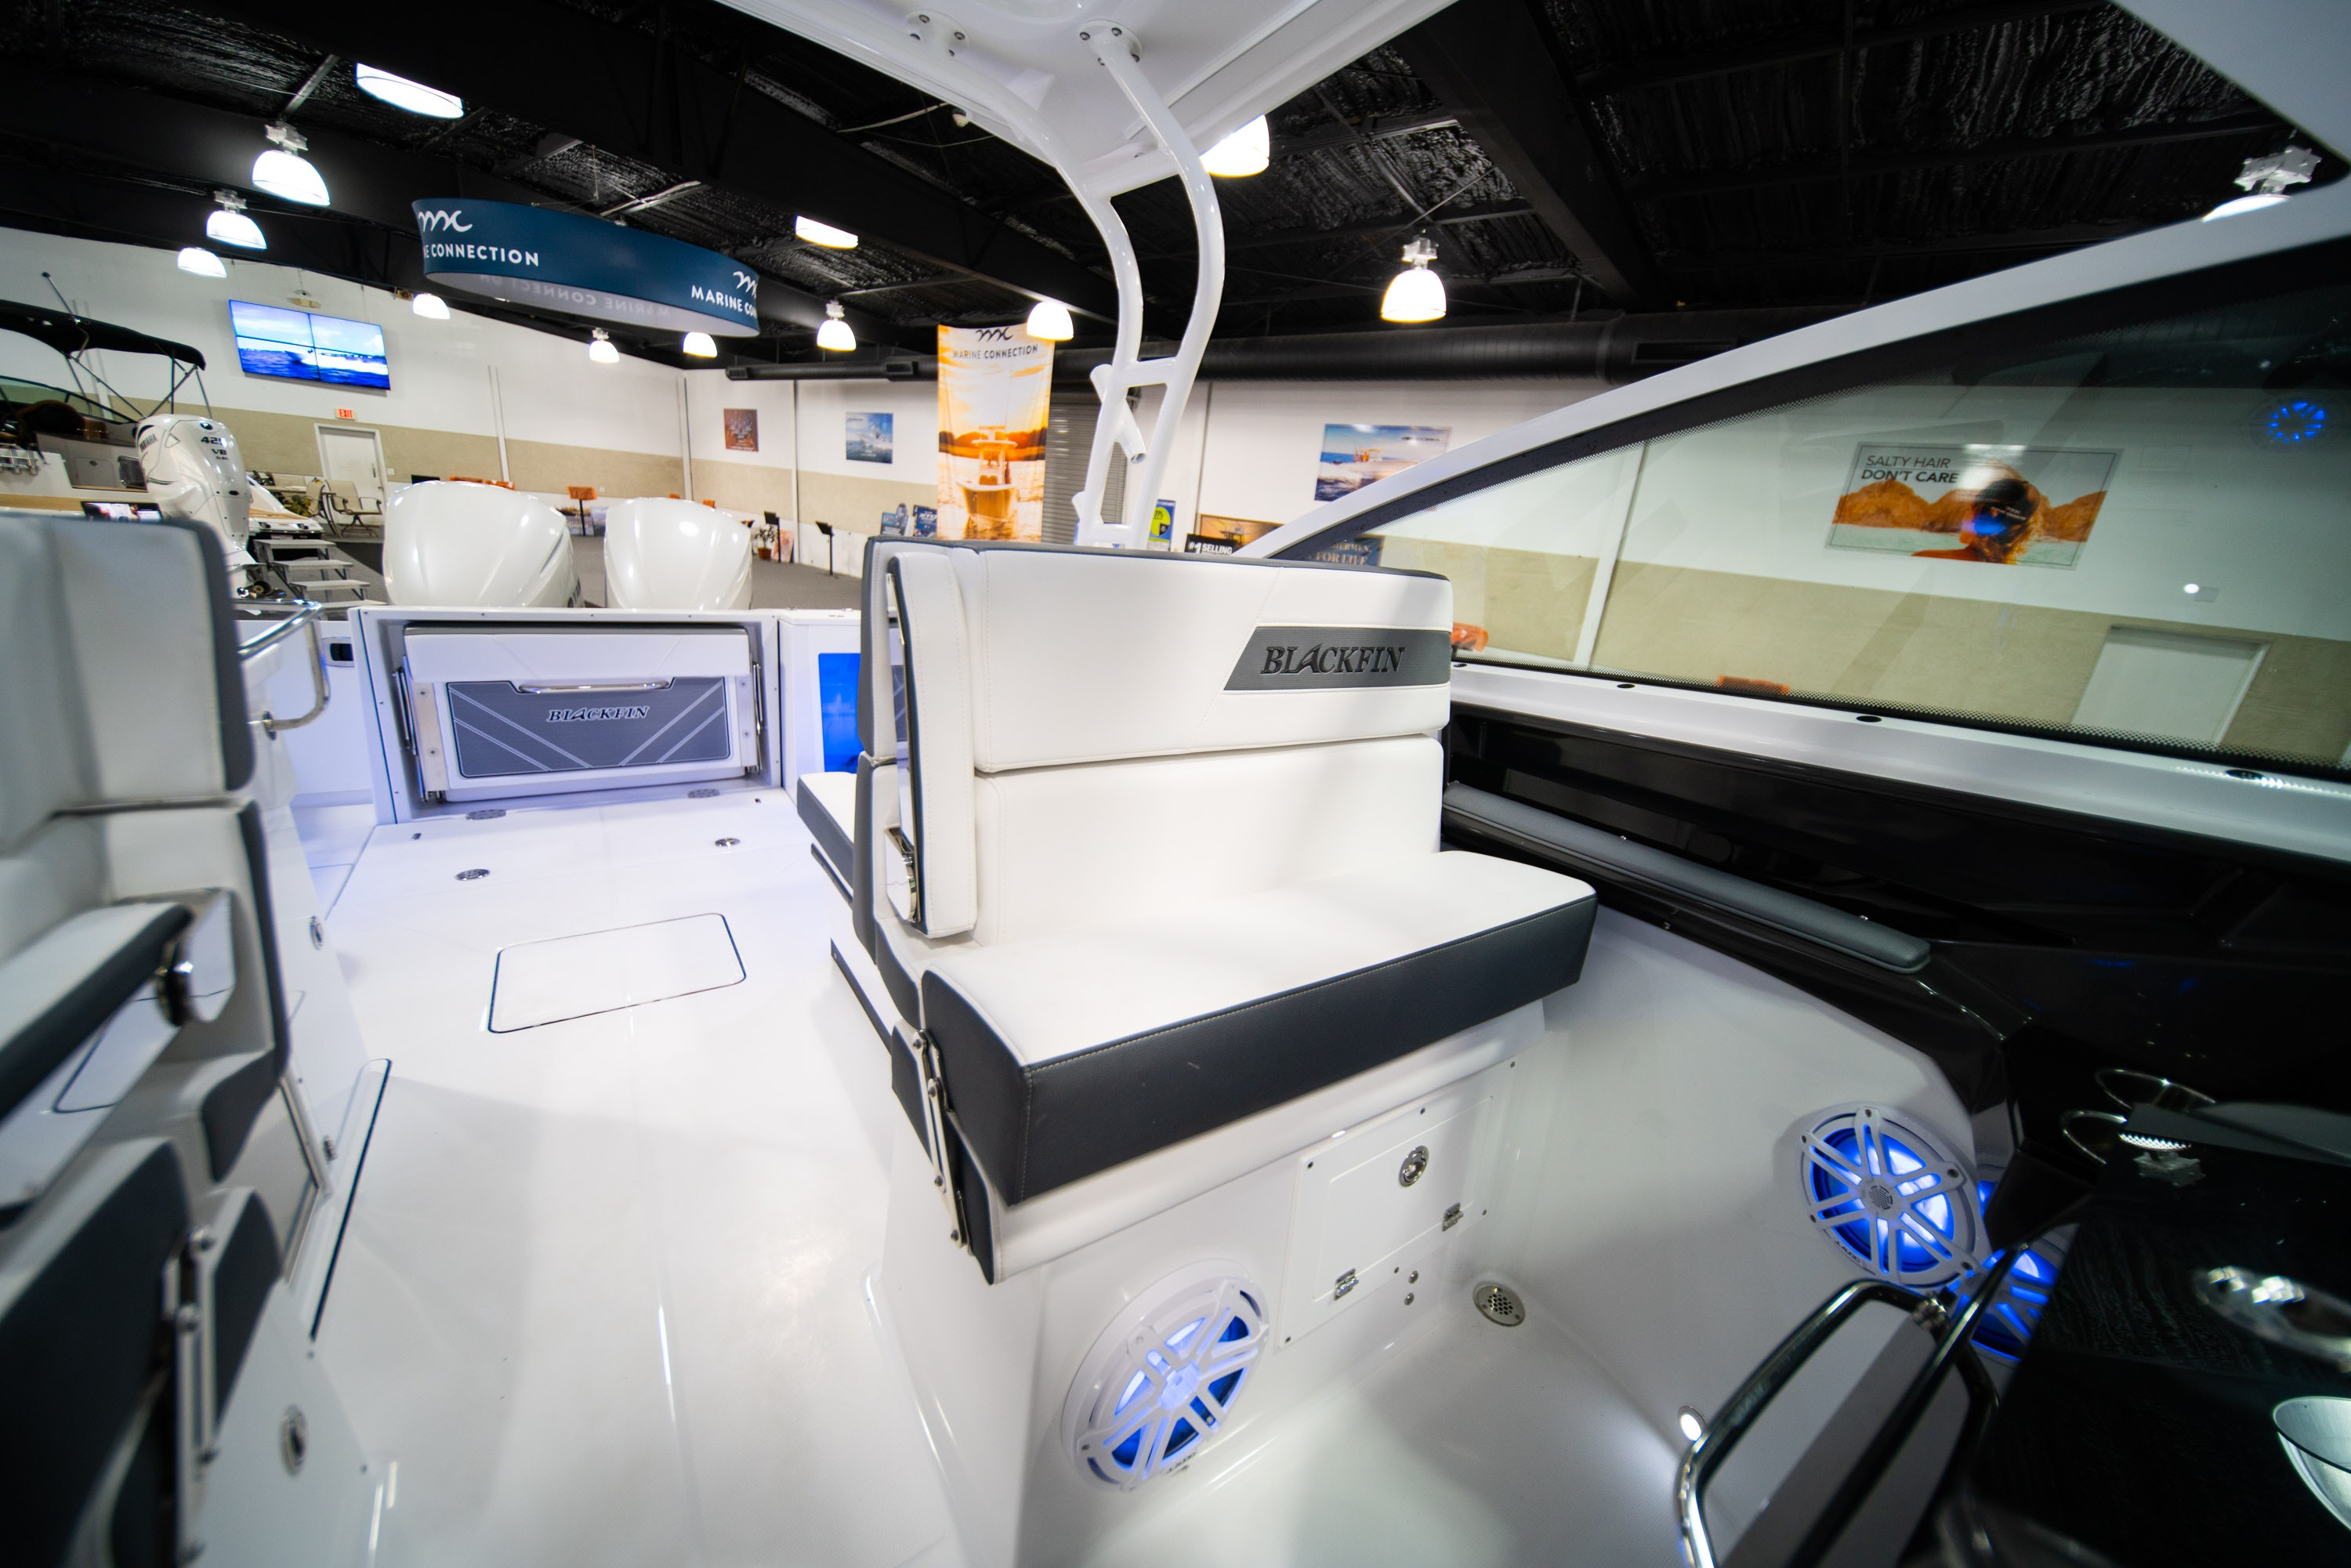 Thumbnail 32 for New 2020 Blackfin 272DC boat for sale in West Palm Beach, FL